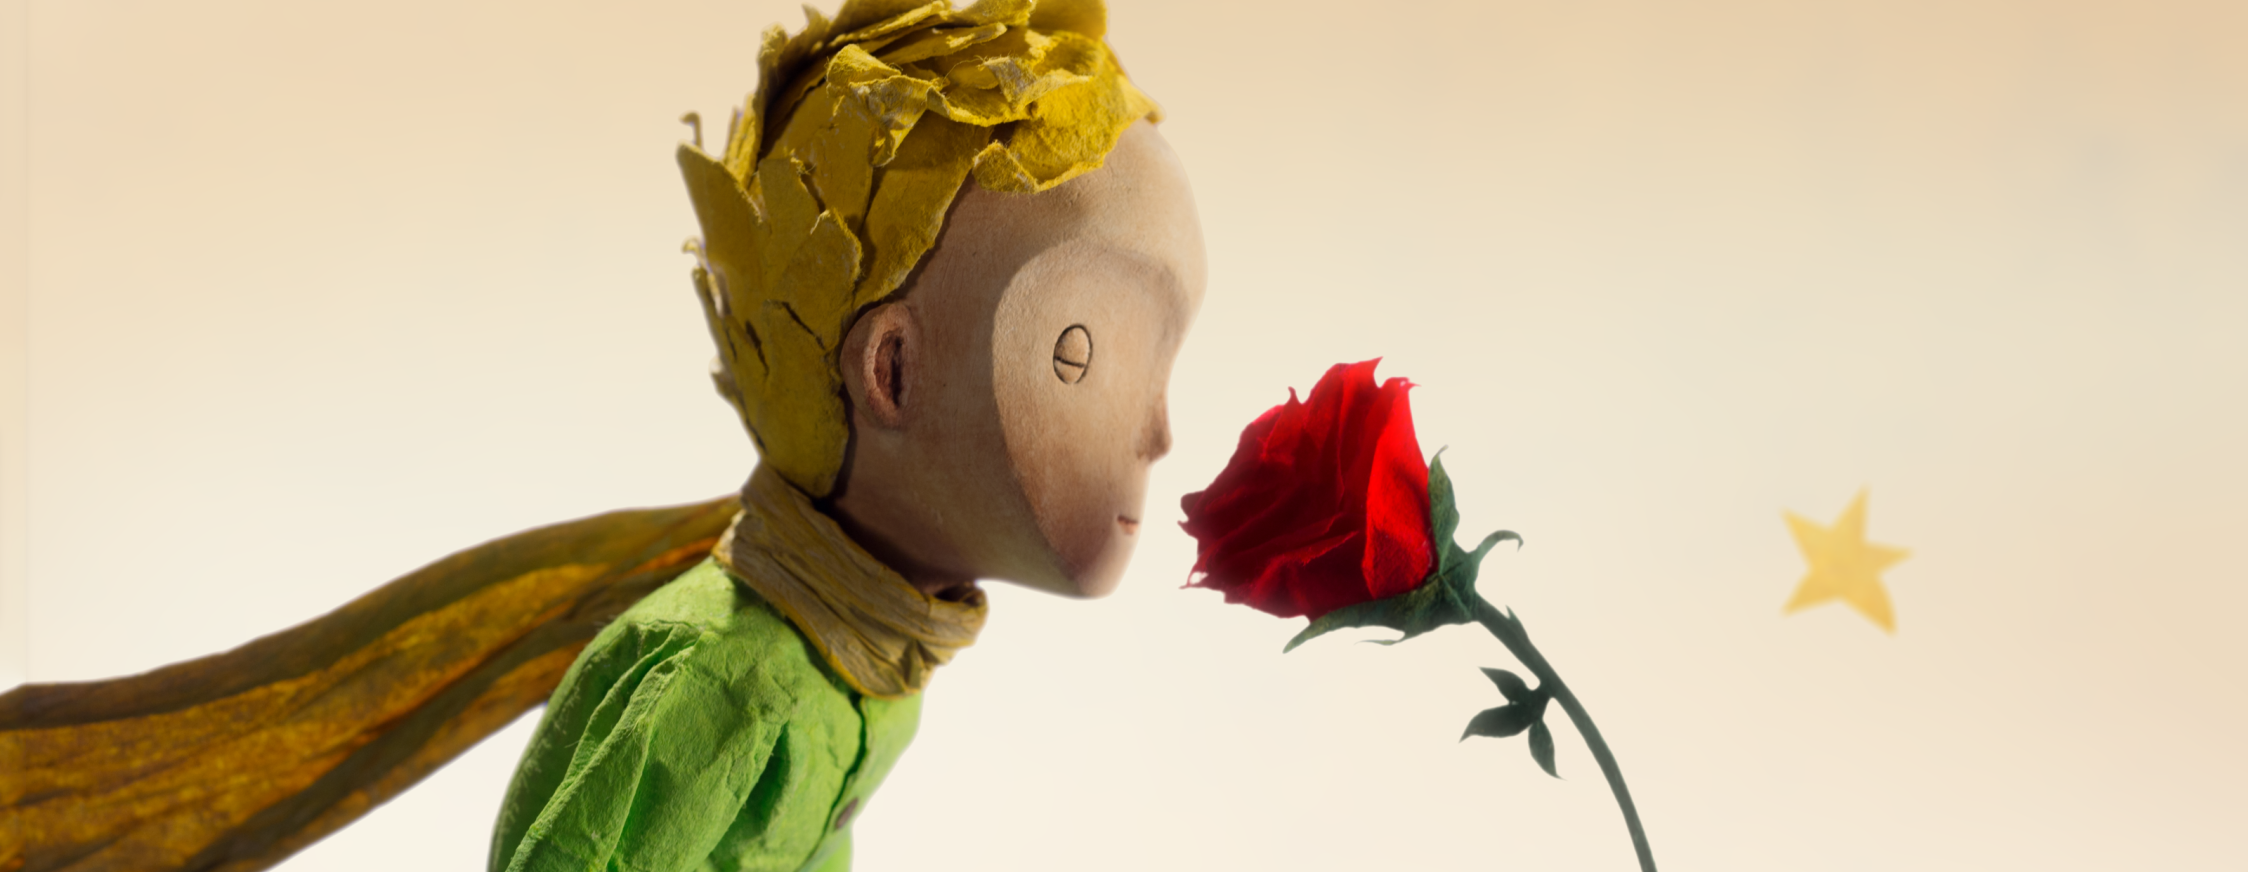 The Little Prince Wallpaper And Background Image